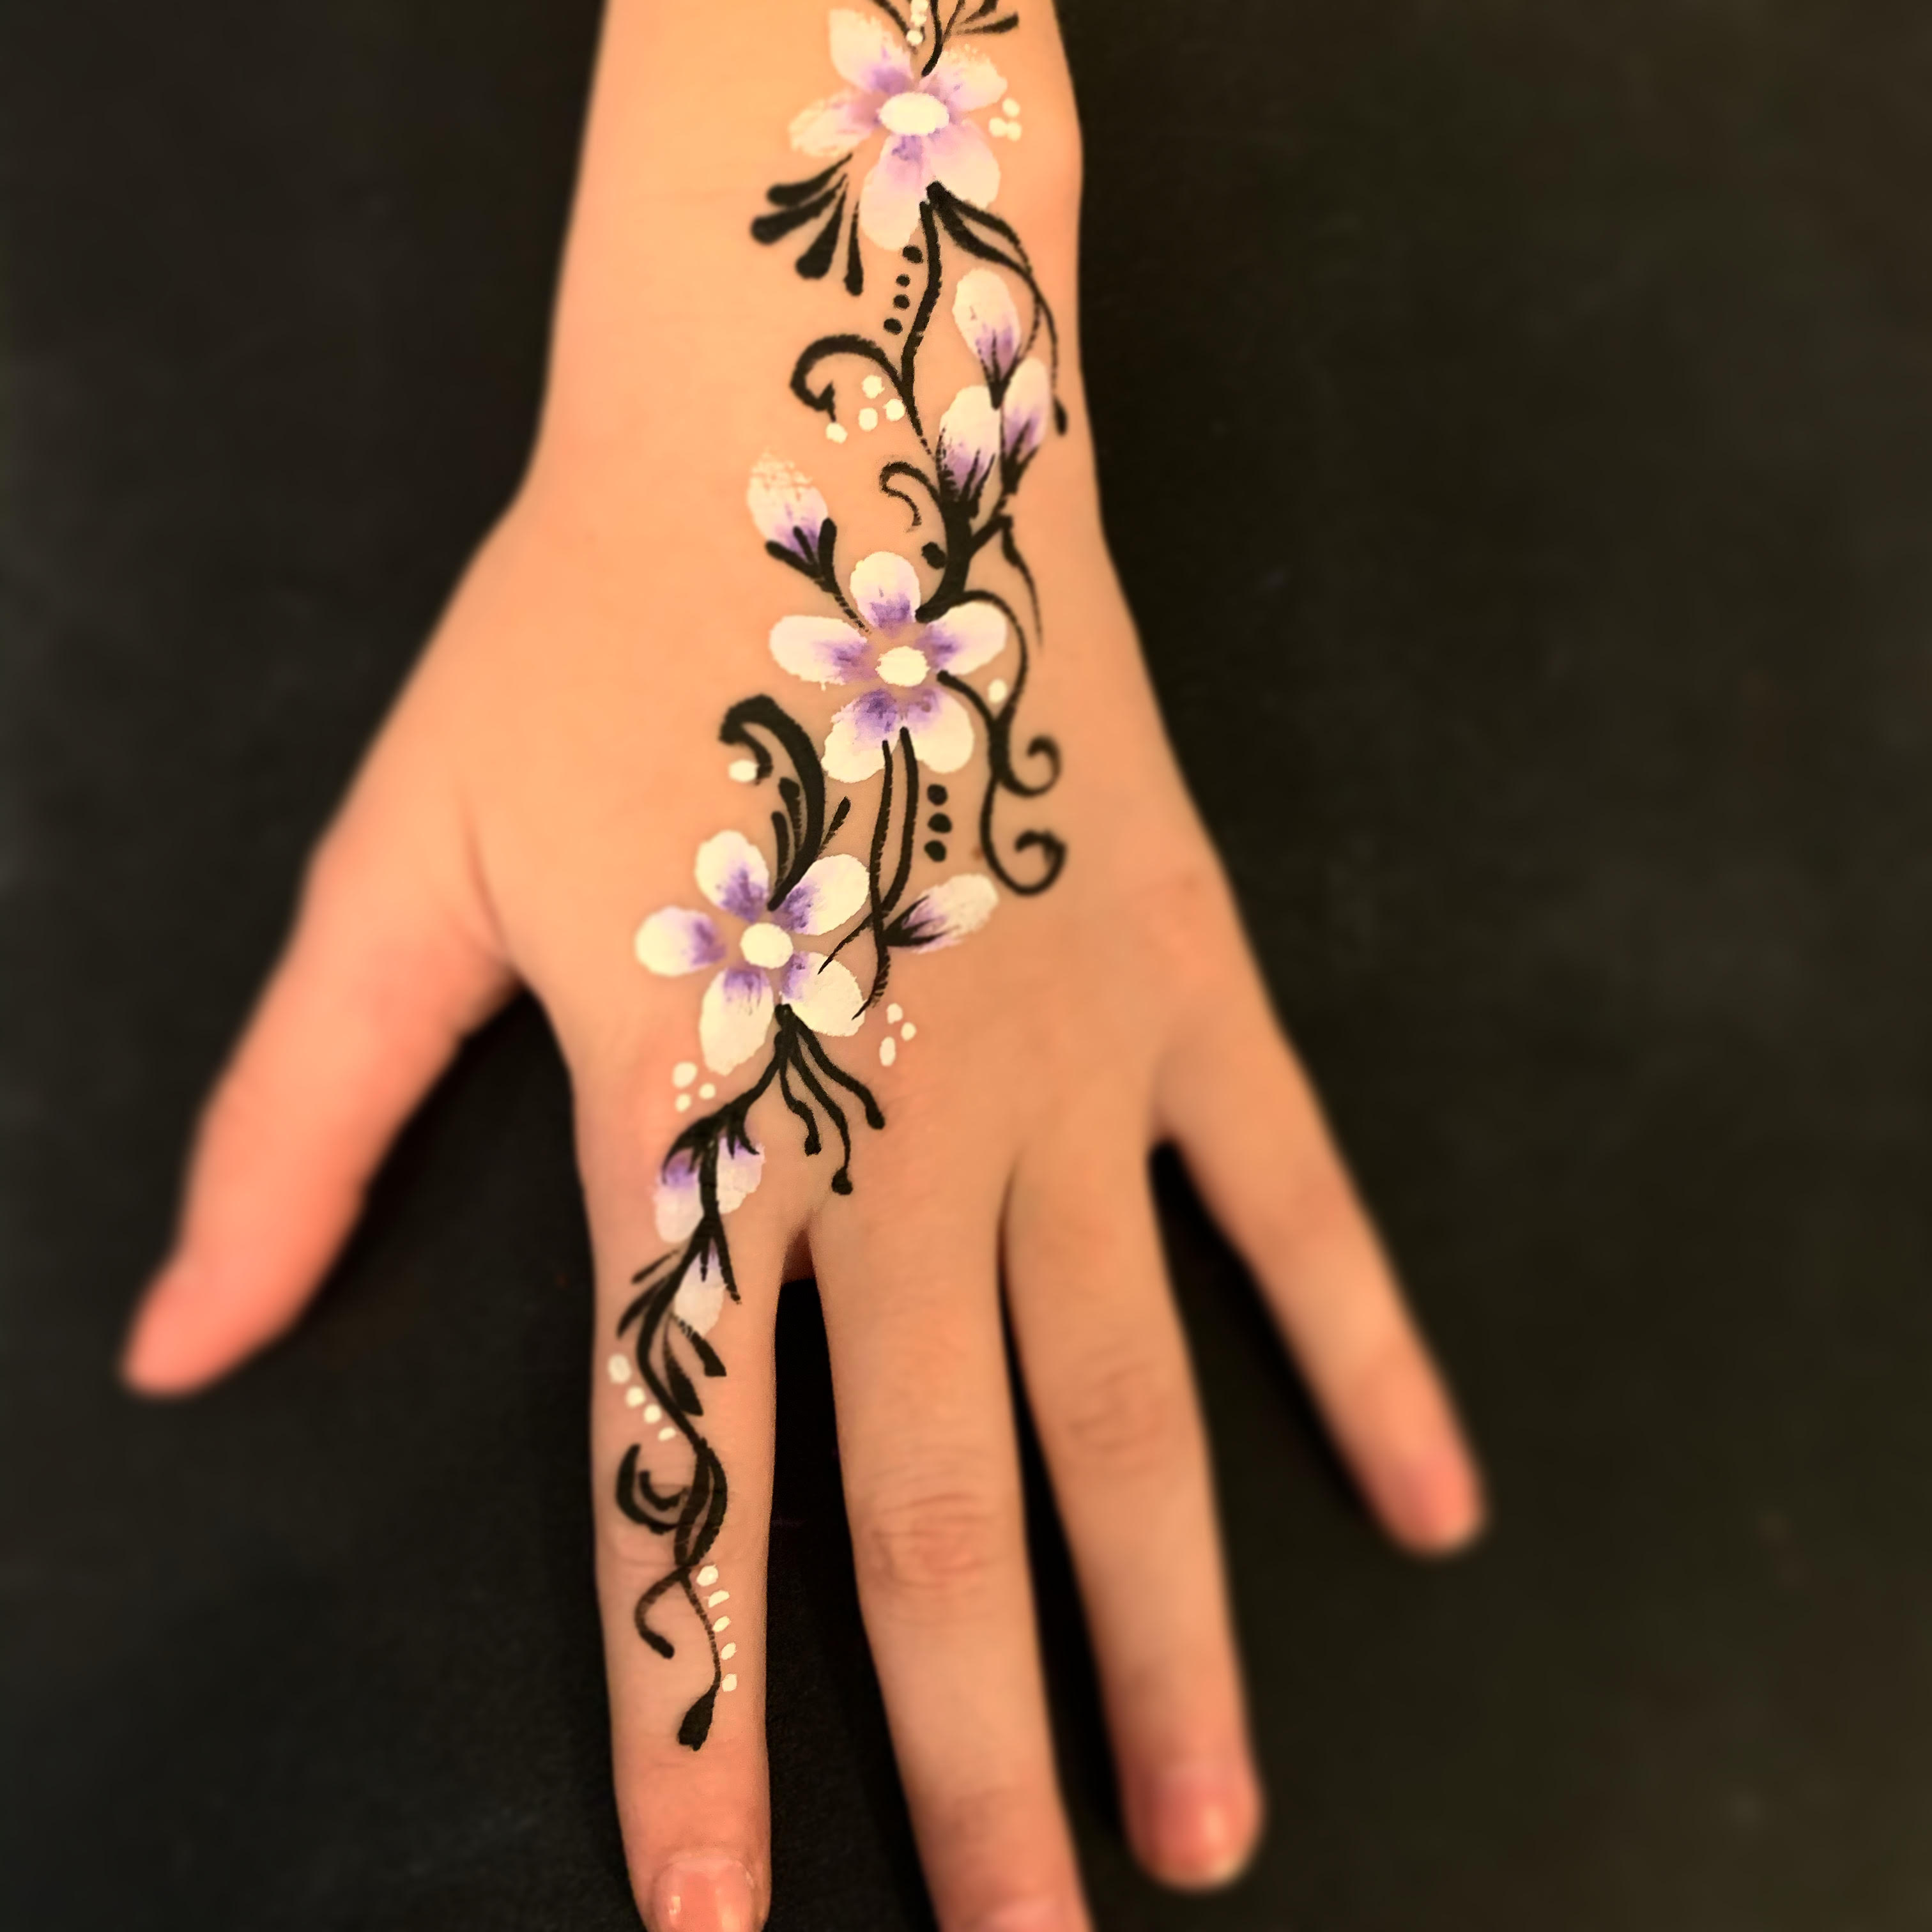 Flowers painted on hand